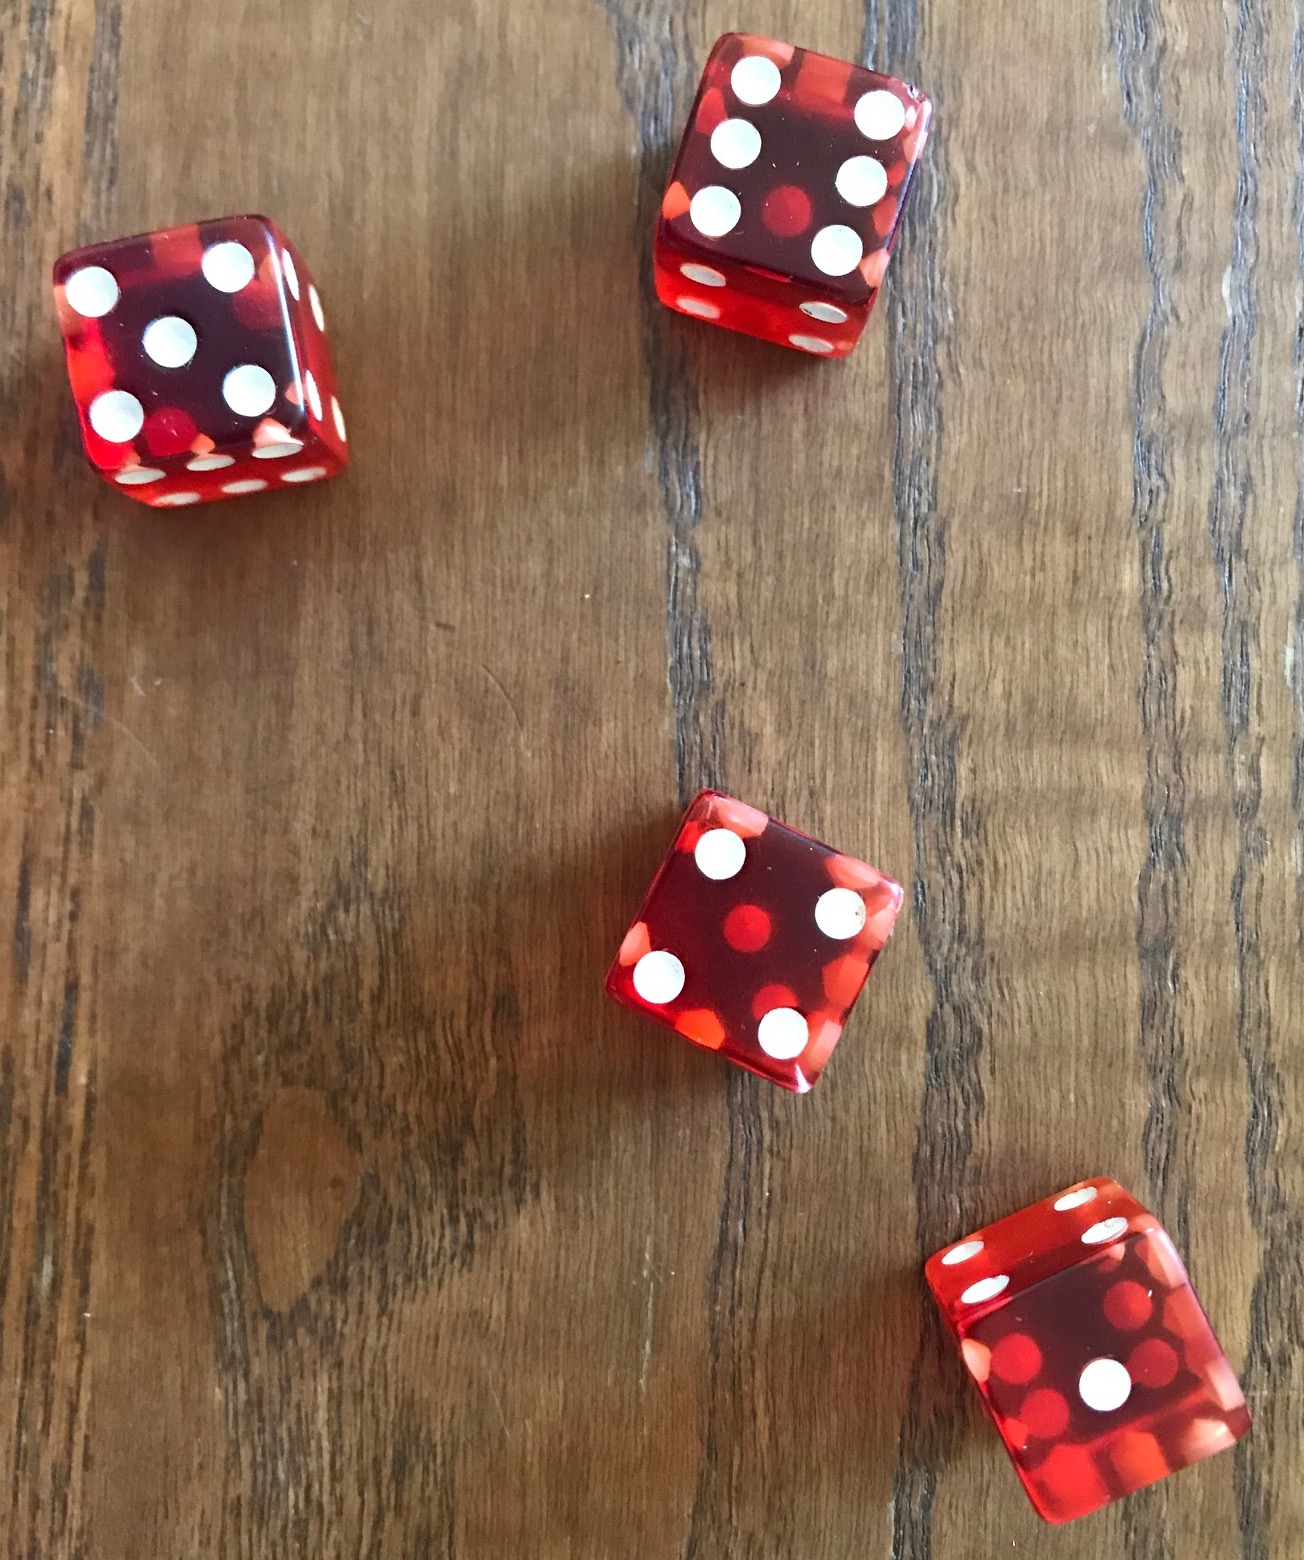 Example dice roll: 5 6 4 1 so can be 11/5, 10/6, 7/9